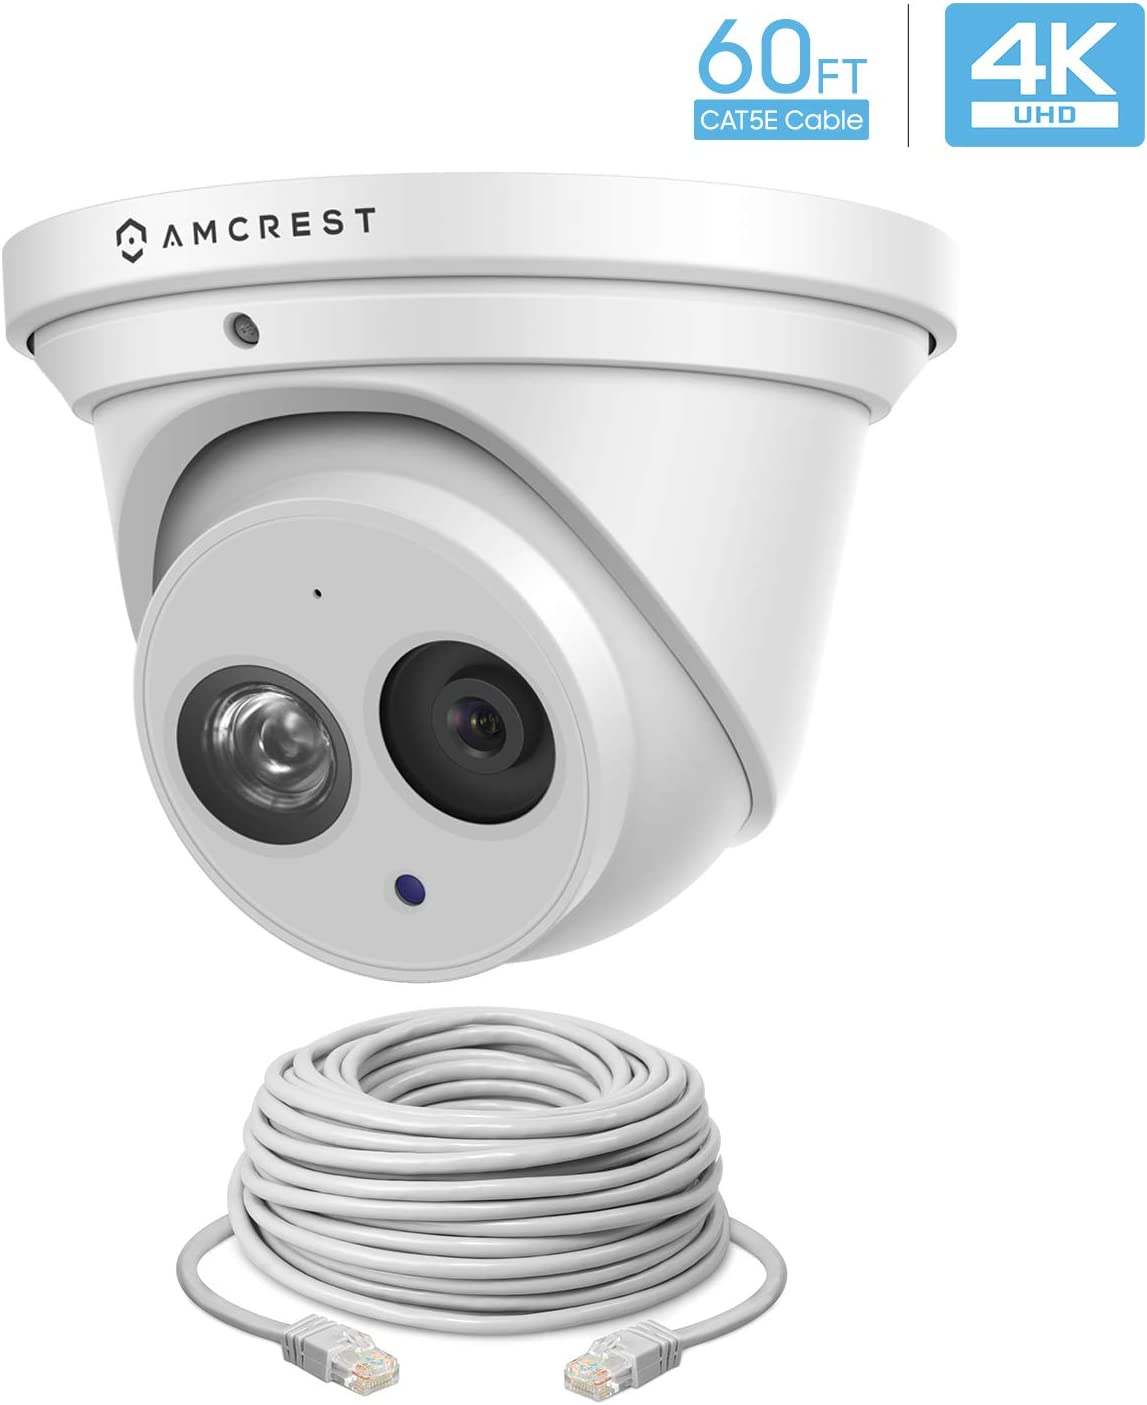 Amcrest UltraHD 4K Outdoor Security IP Turret PoE Camera, 164ft NightVision, 2.8mm Lens, IP67 Weatherproof, MicroSD Recording 128GB , Cat5 60 Foot Ethernet Cable IP8M-T2499EW-28MM-CAT5ECABLE60